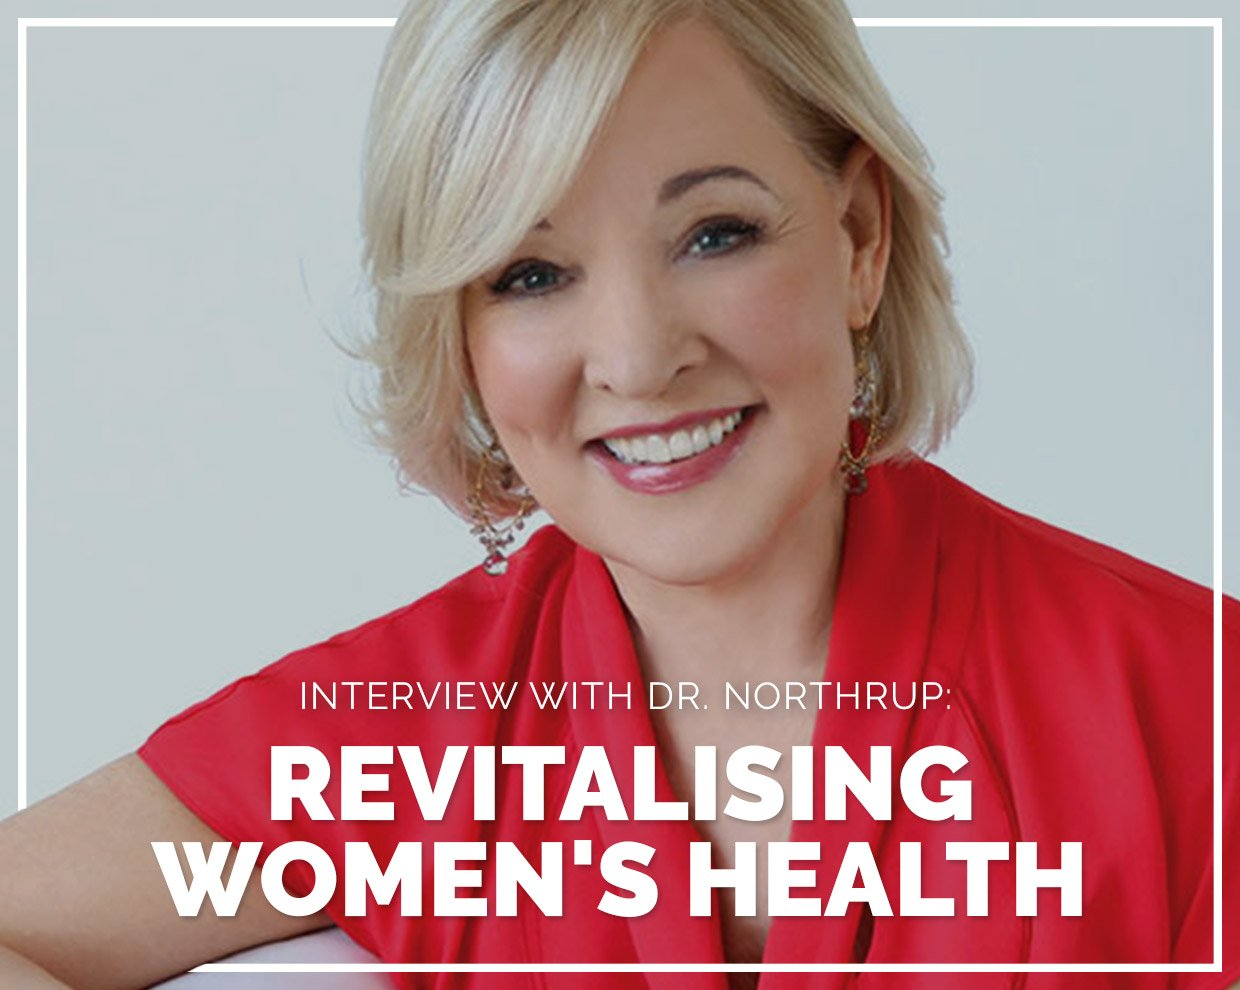 Interview with Dr Northrup - Revitalising Women's Health